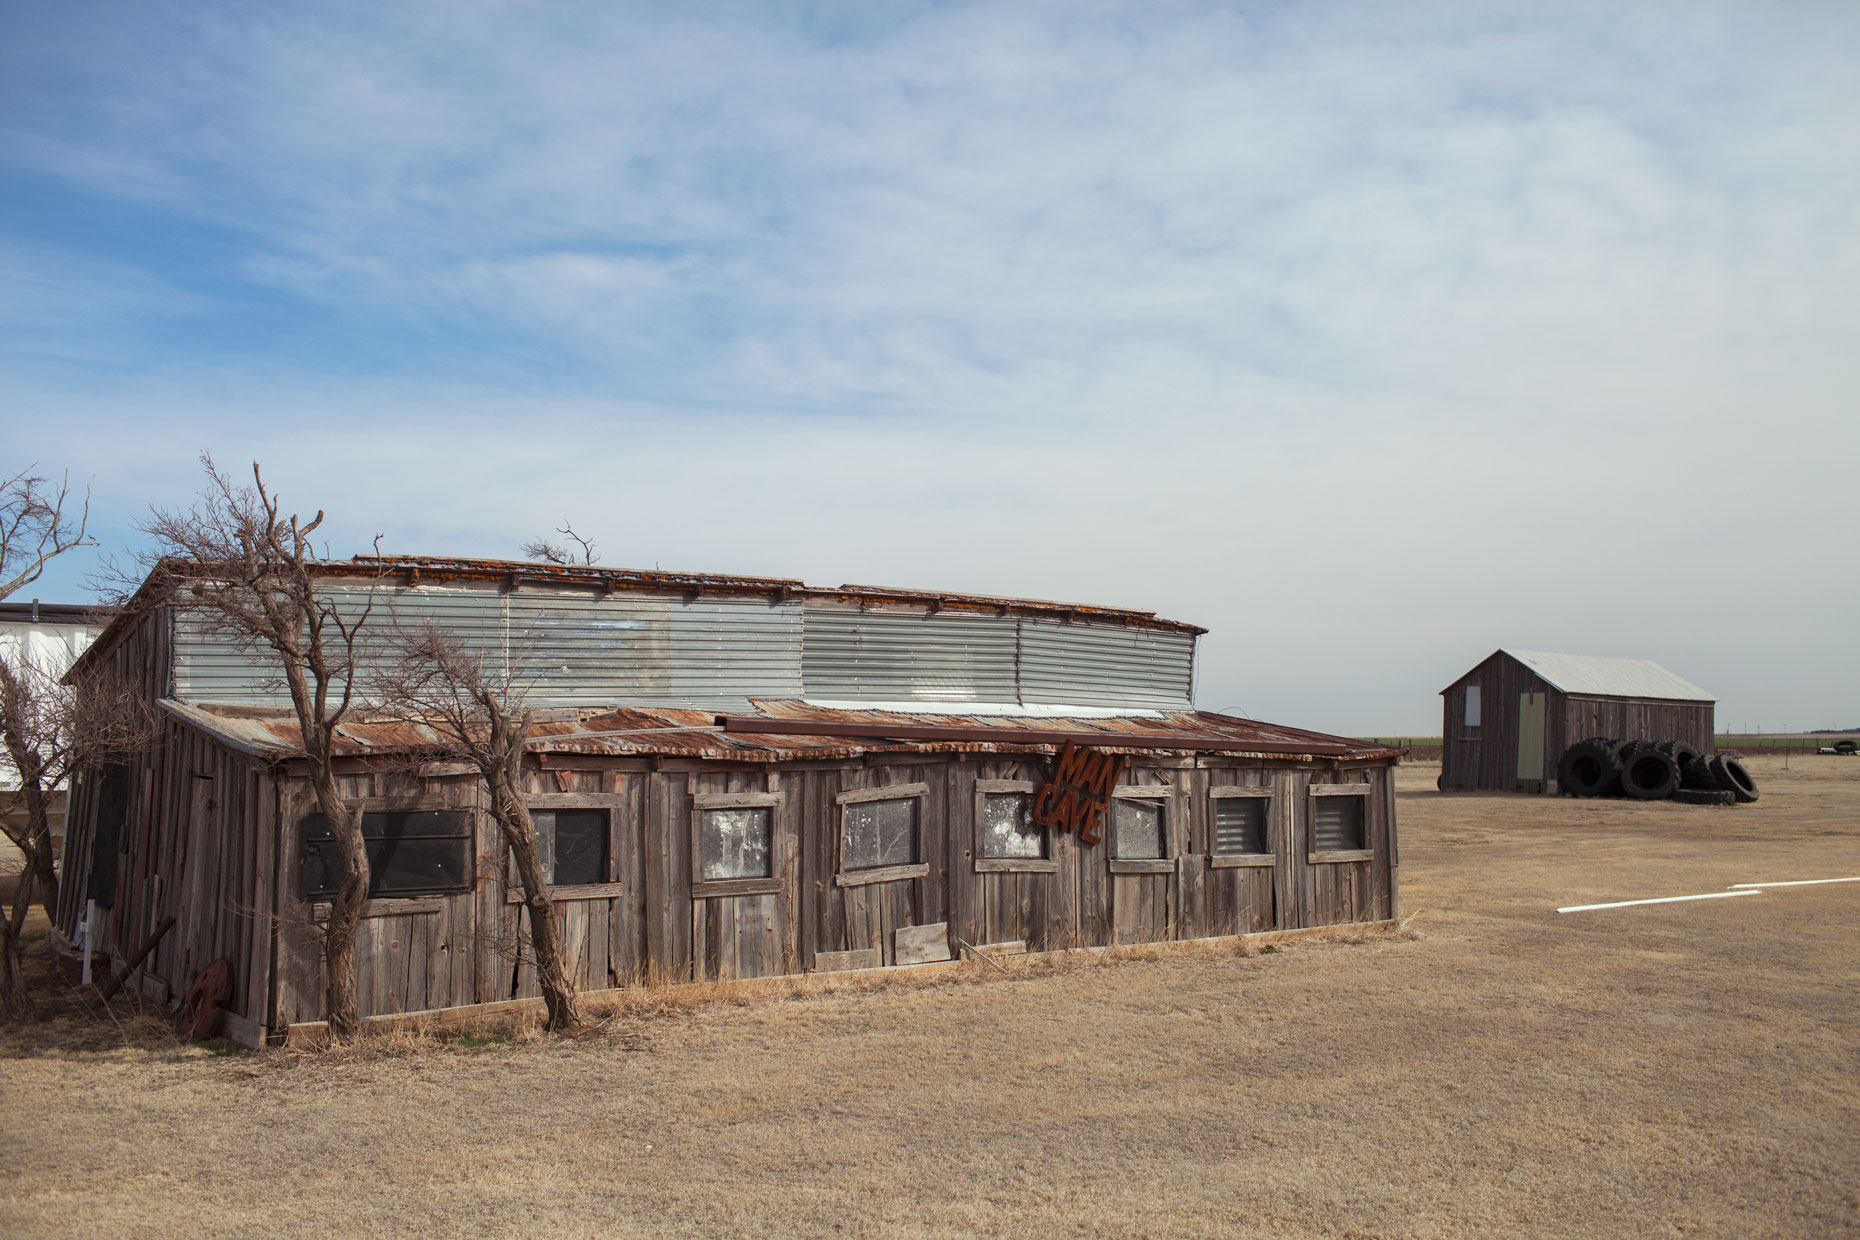 Old barn in White Deer in the Texas Panhandle